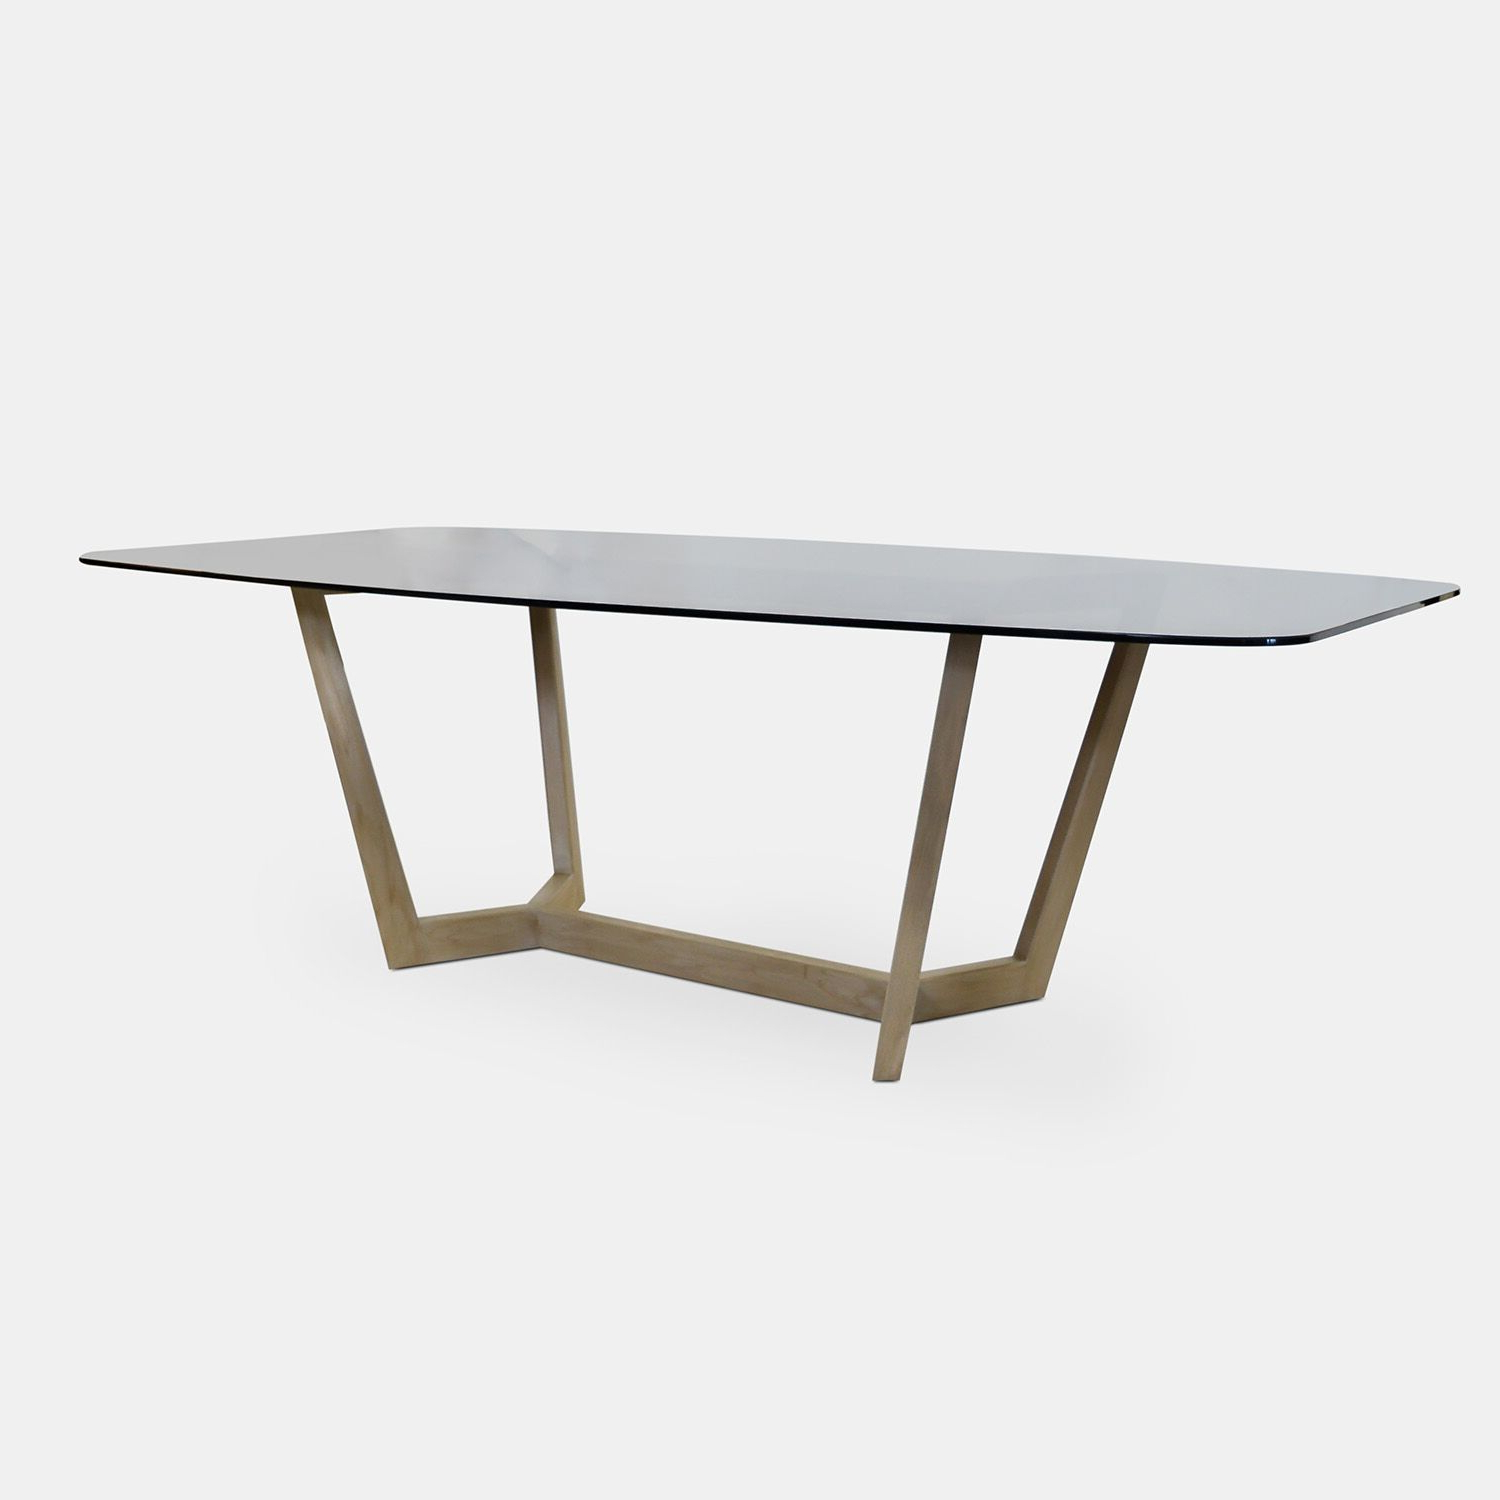 Bronze Glass Top Dining Table & Solid Wood Oak Base – Rotsen With Regard To Latest Smoked Oval Glasstop Dining Tables (View 19 of 30)